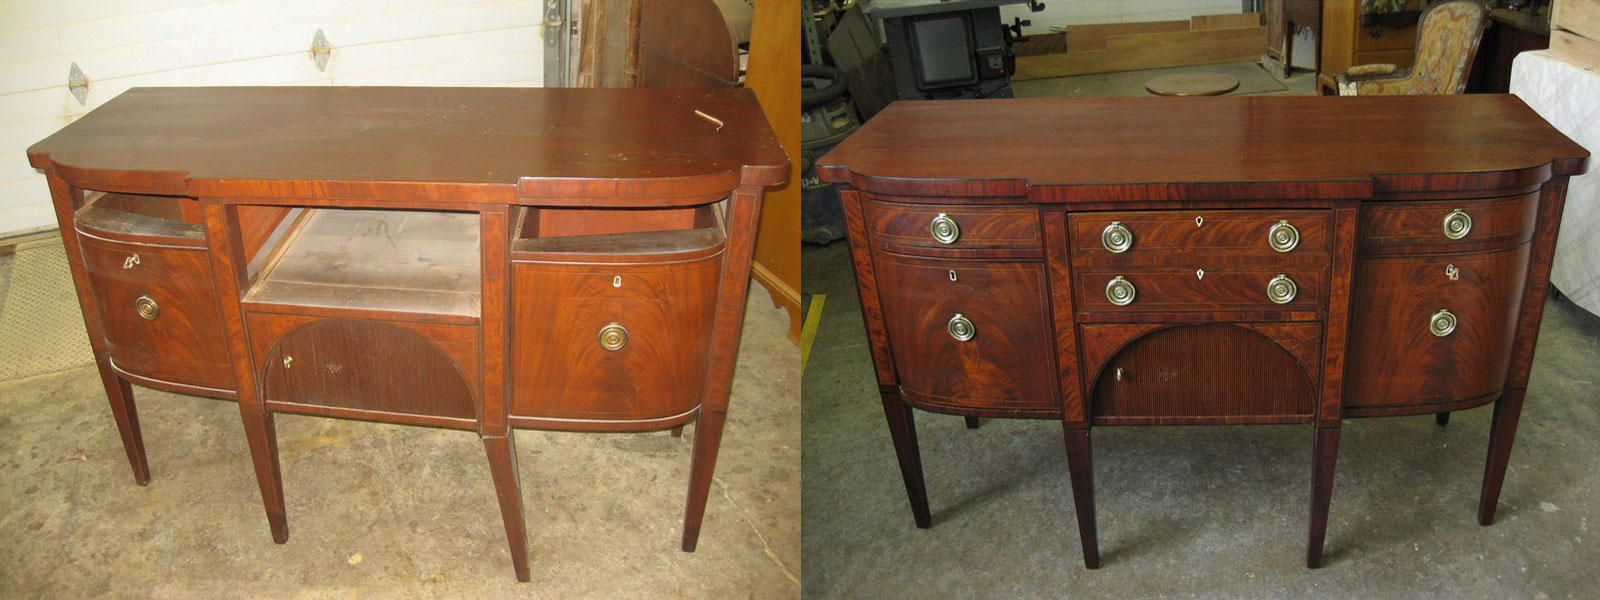 Antique Restoration Michigan Professional Furniture Restoration And Refinishing Gallery